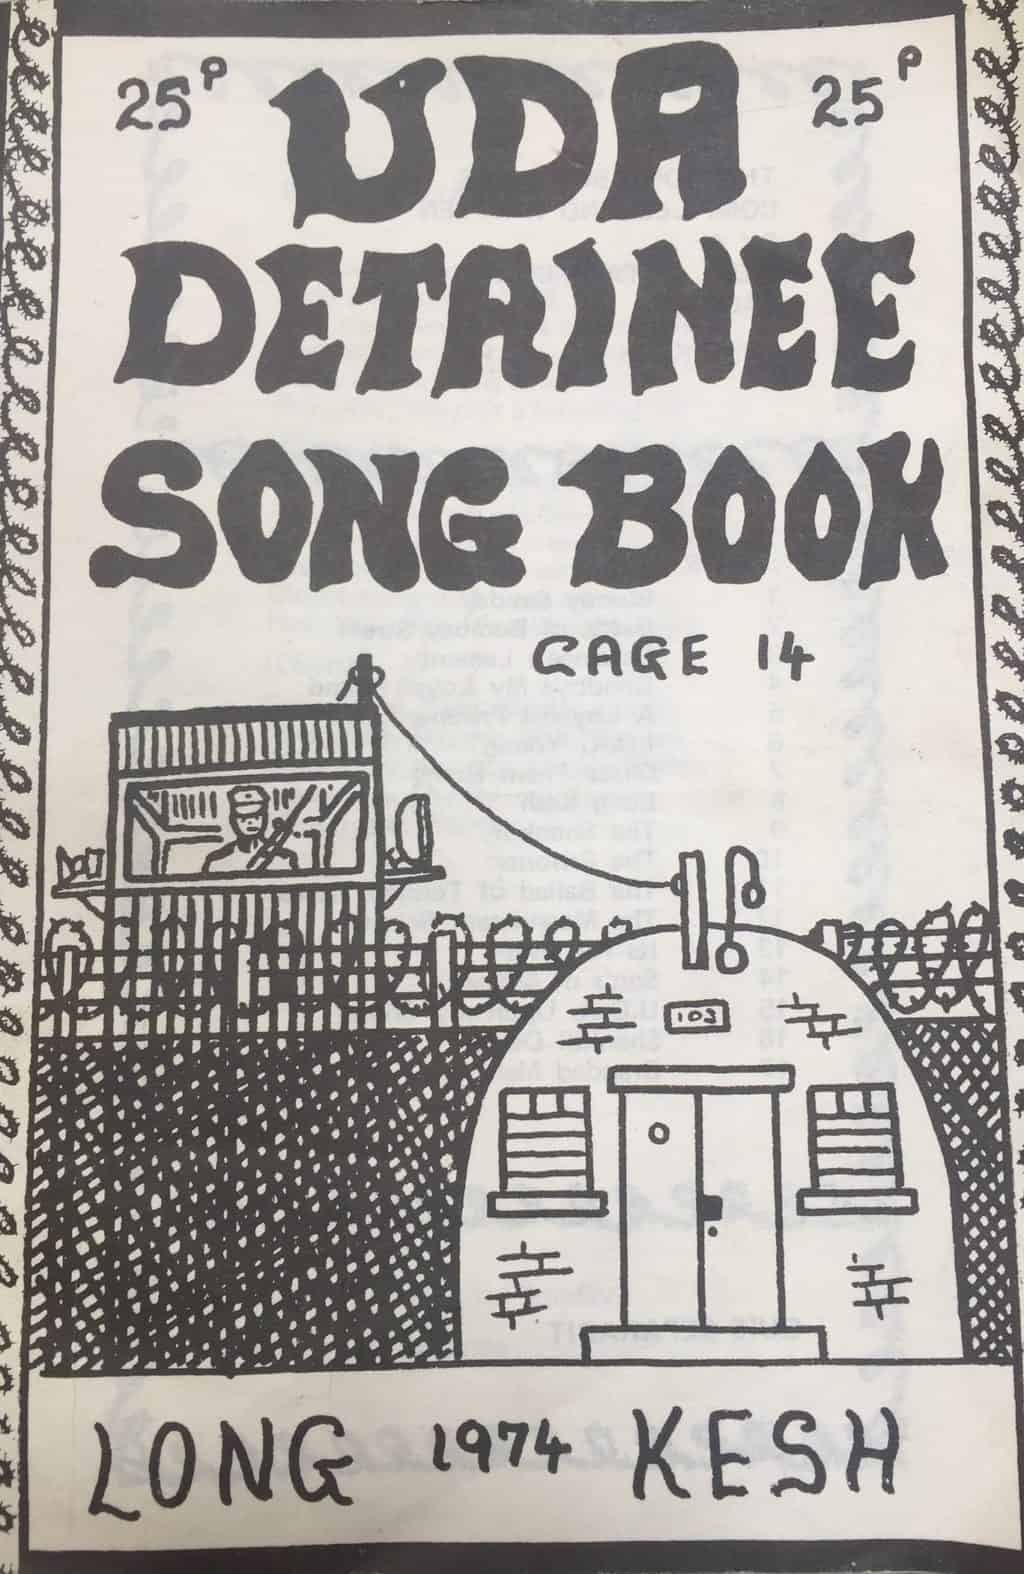 UDA detainee song book